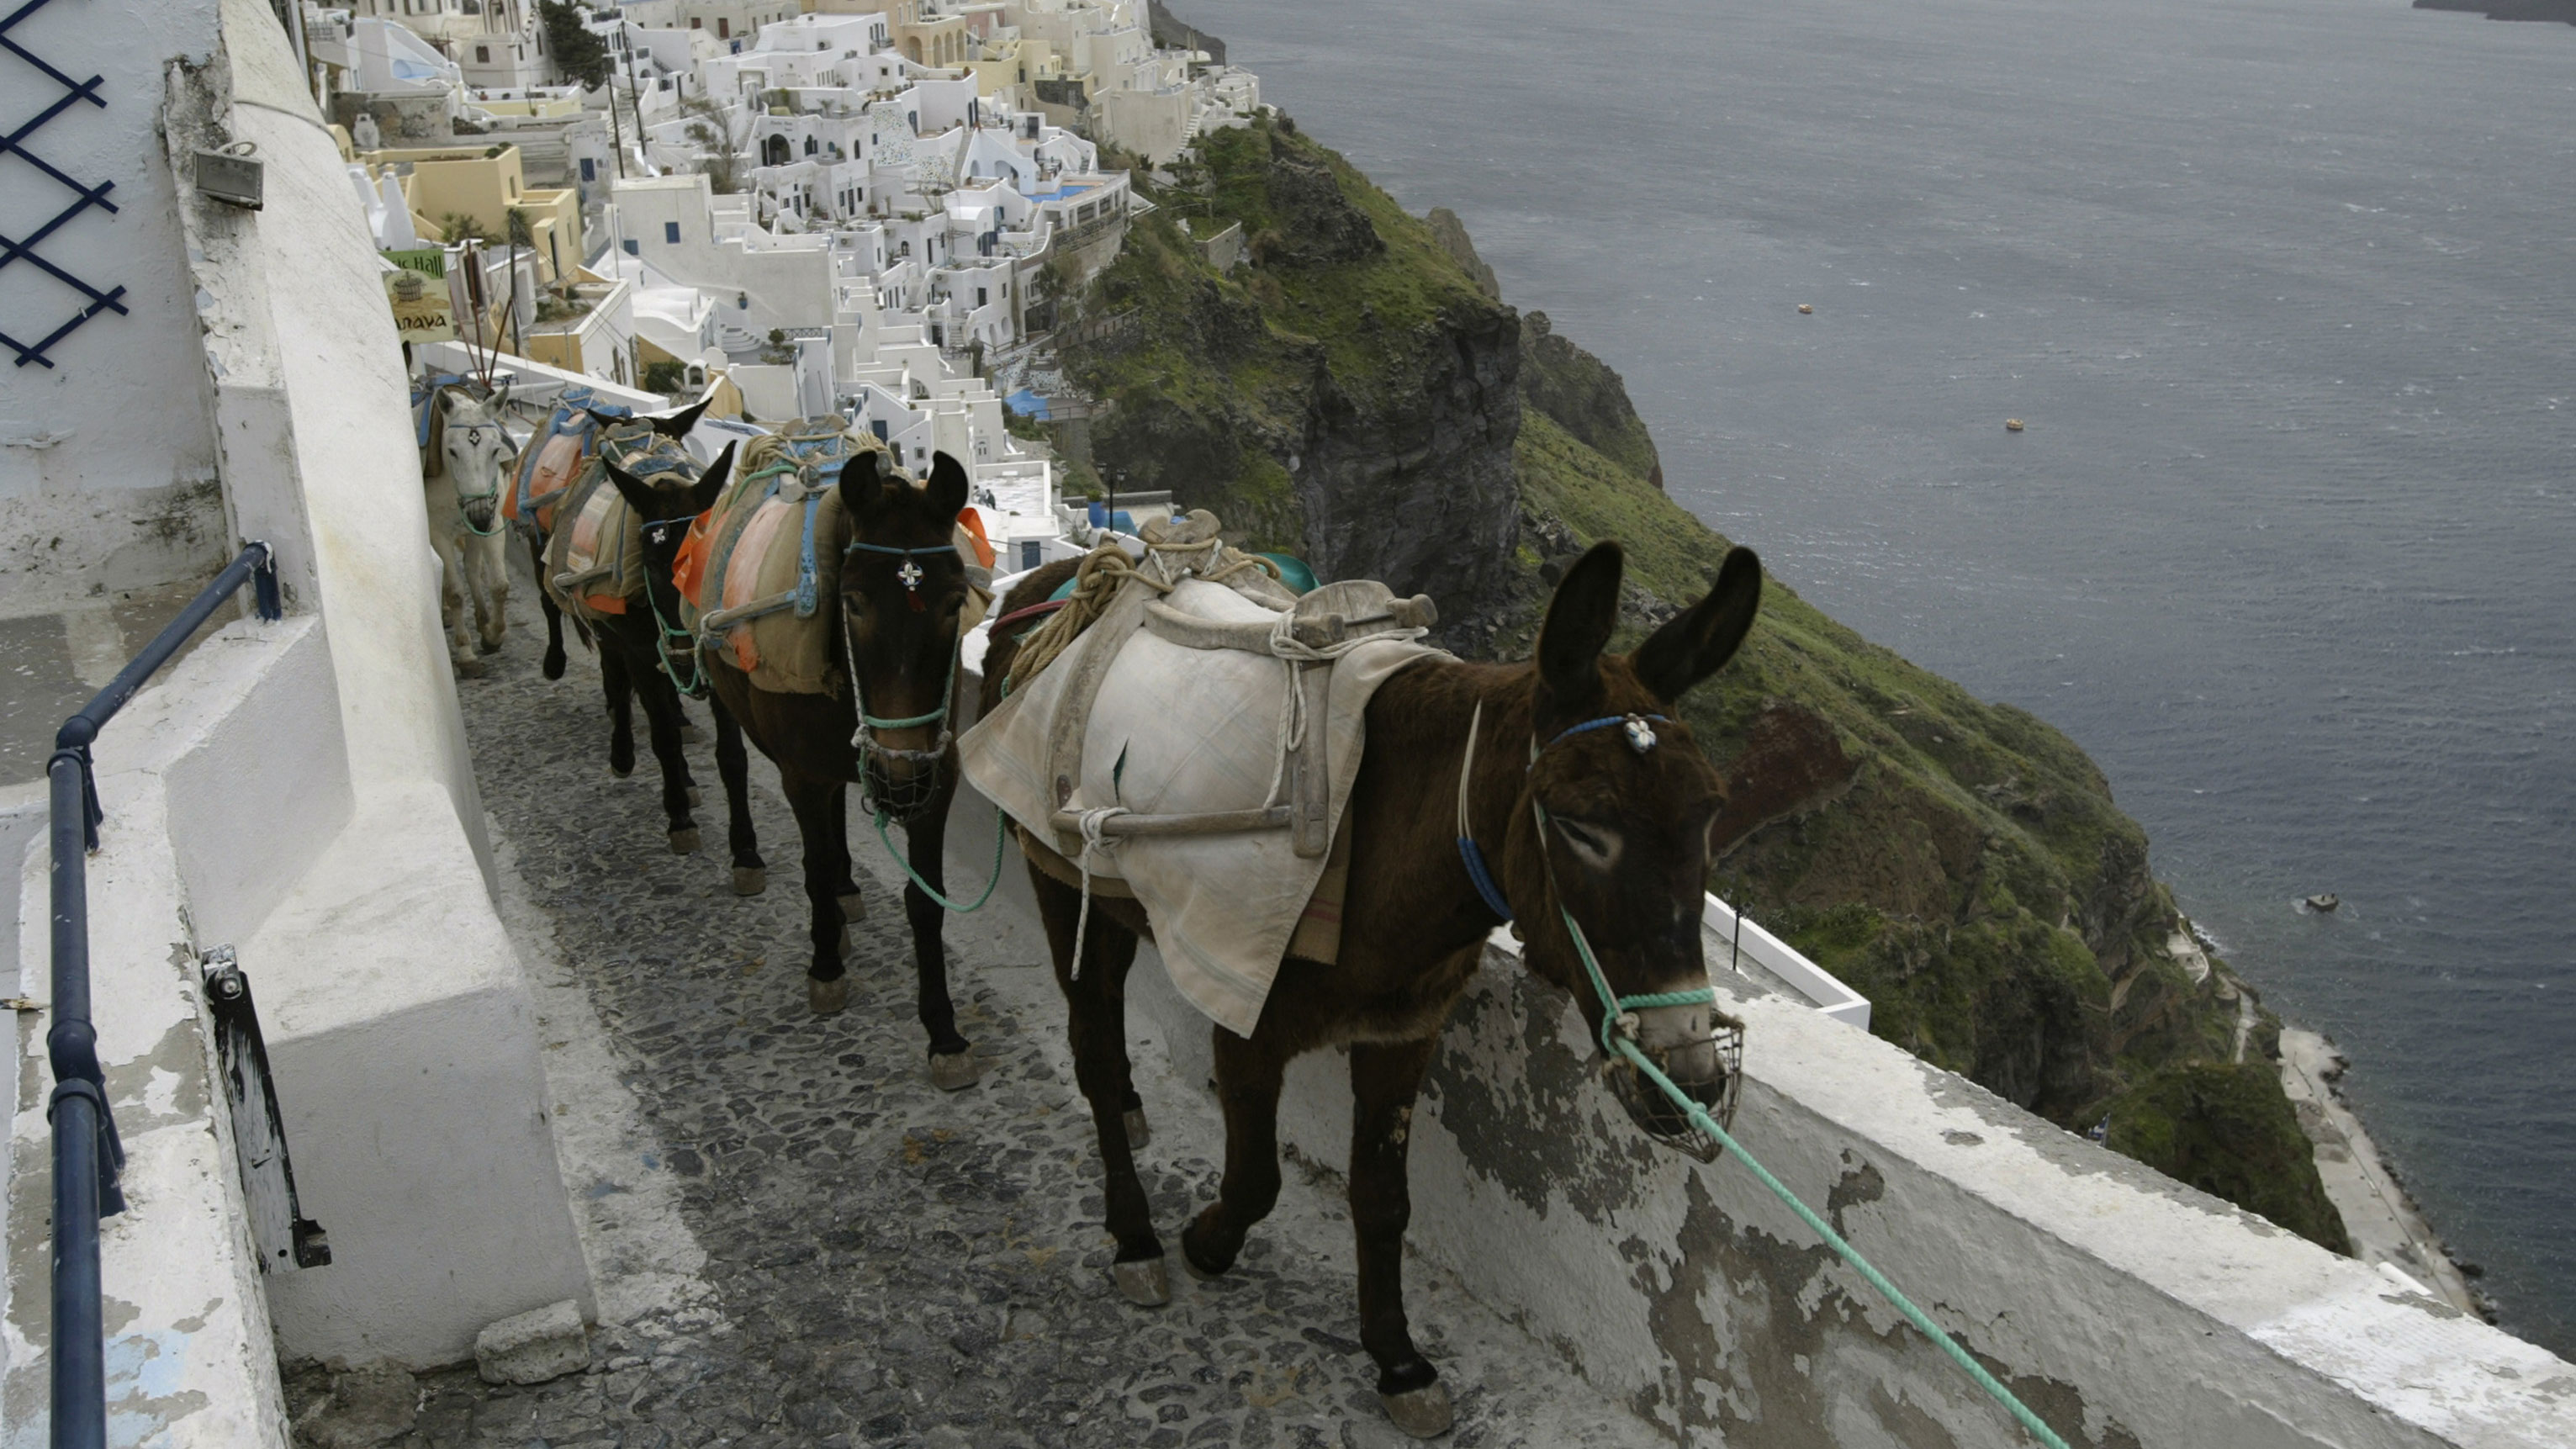 Santorini tourists asked to walk up instead of riding